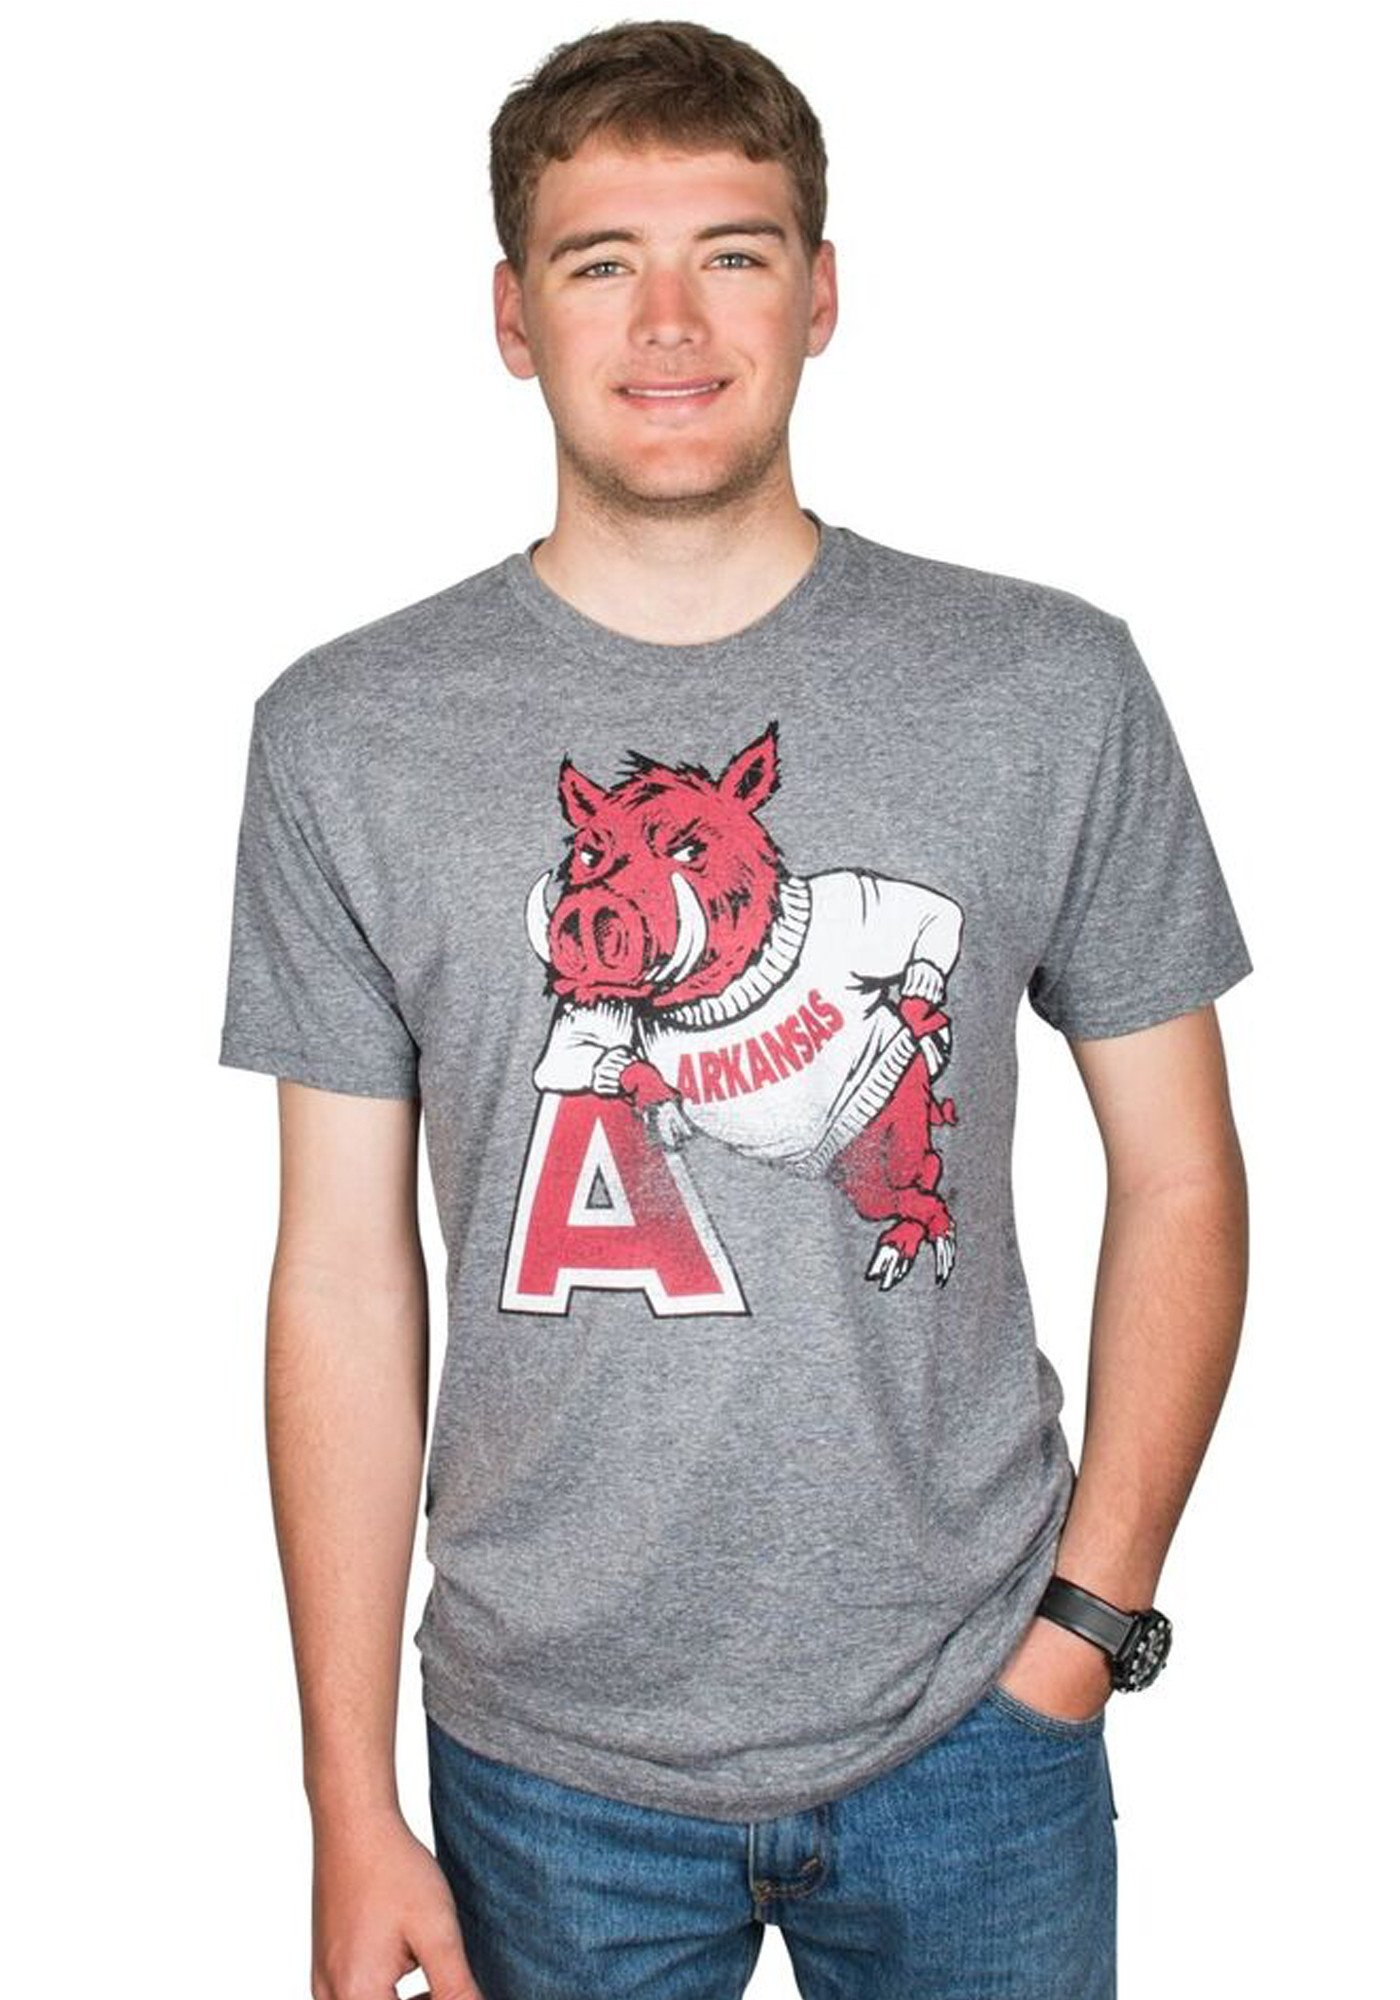 HOG LEANING ON 'A'- SHORT SLEEVE